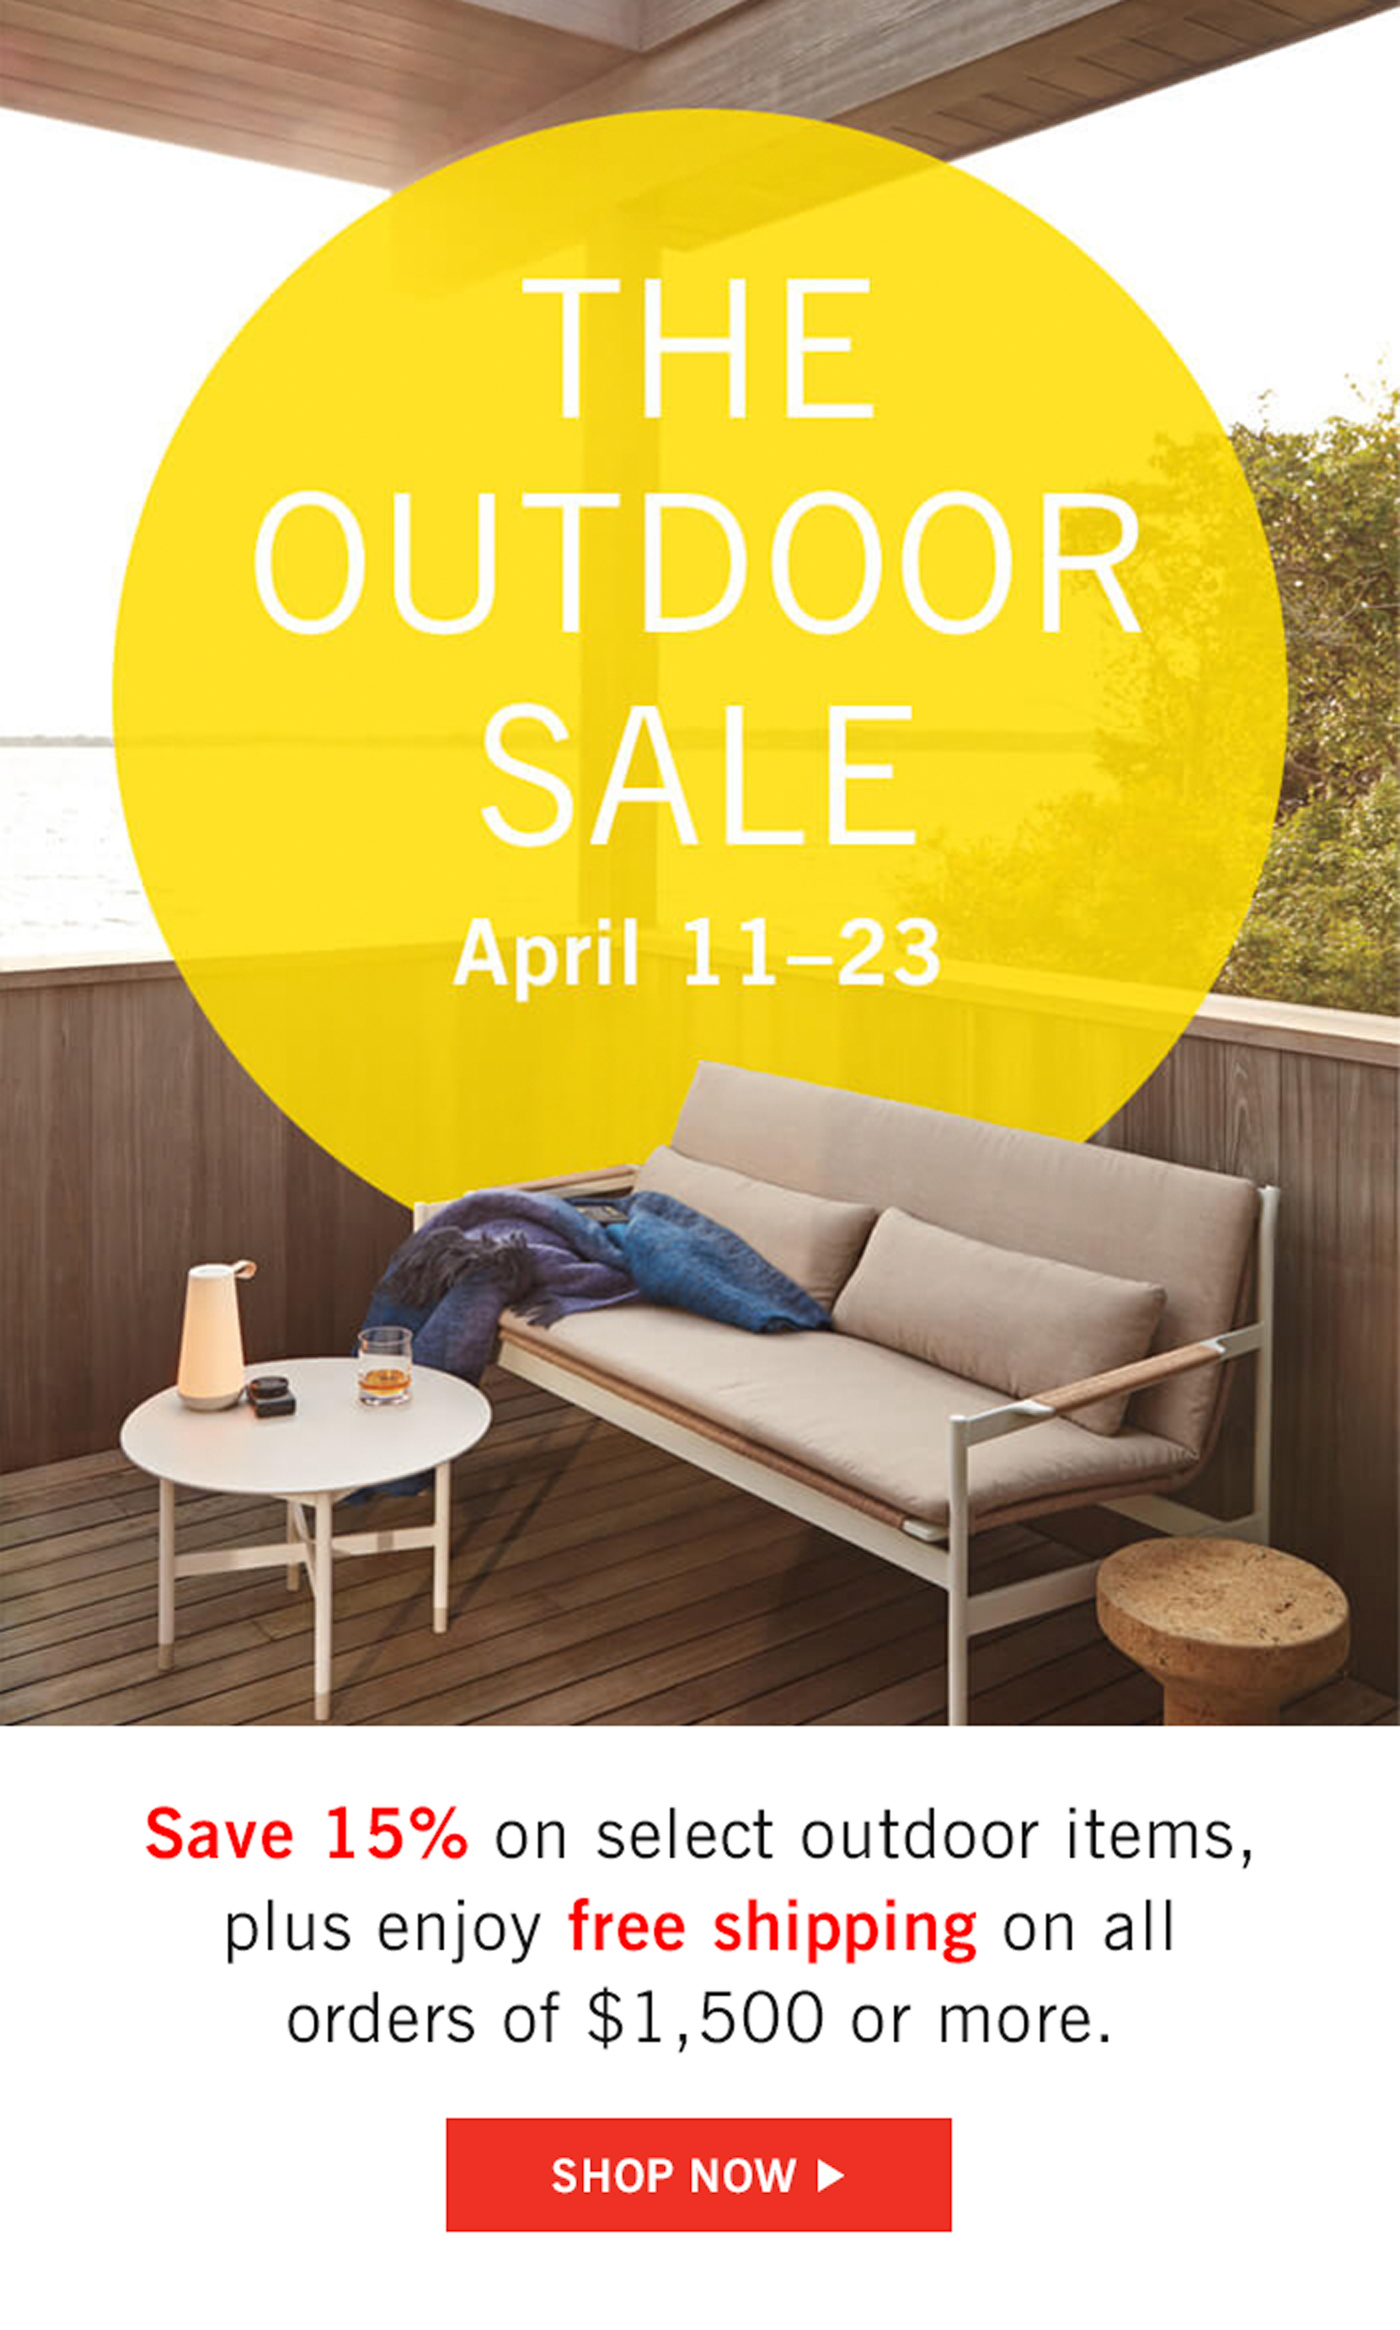 The Outdoor Sale. April 11-23. Save 15% on select outdoor items, plus enjoy free shipping on all orders of $1,500 or more. Shop now.